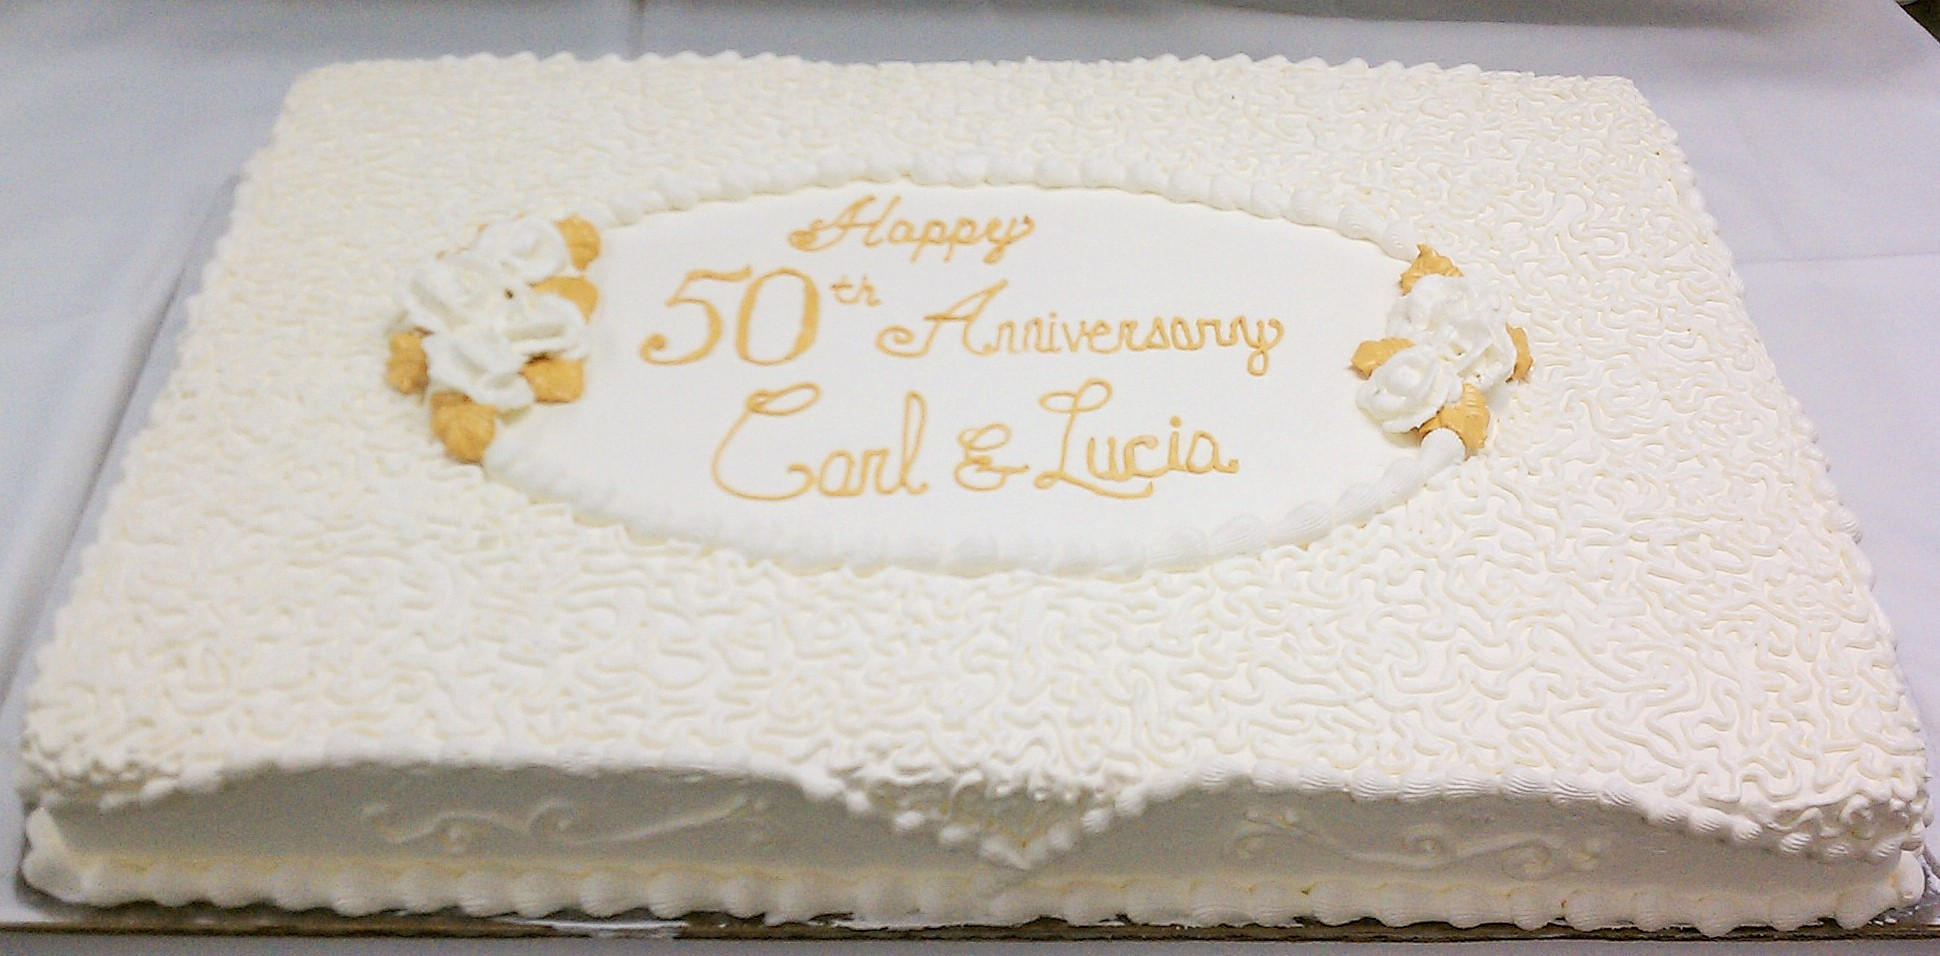 Anniversary cakes kates kakes for 50th wedding anniversary cake decoration ideas